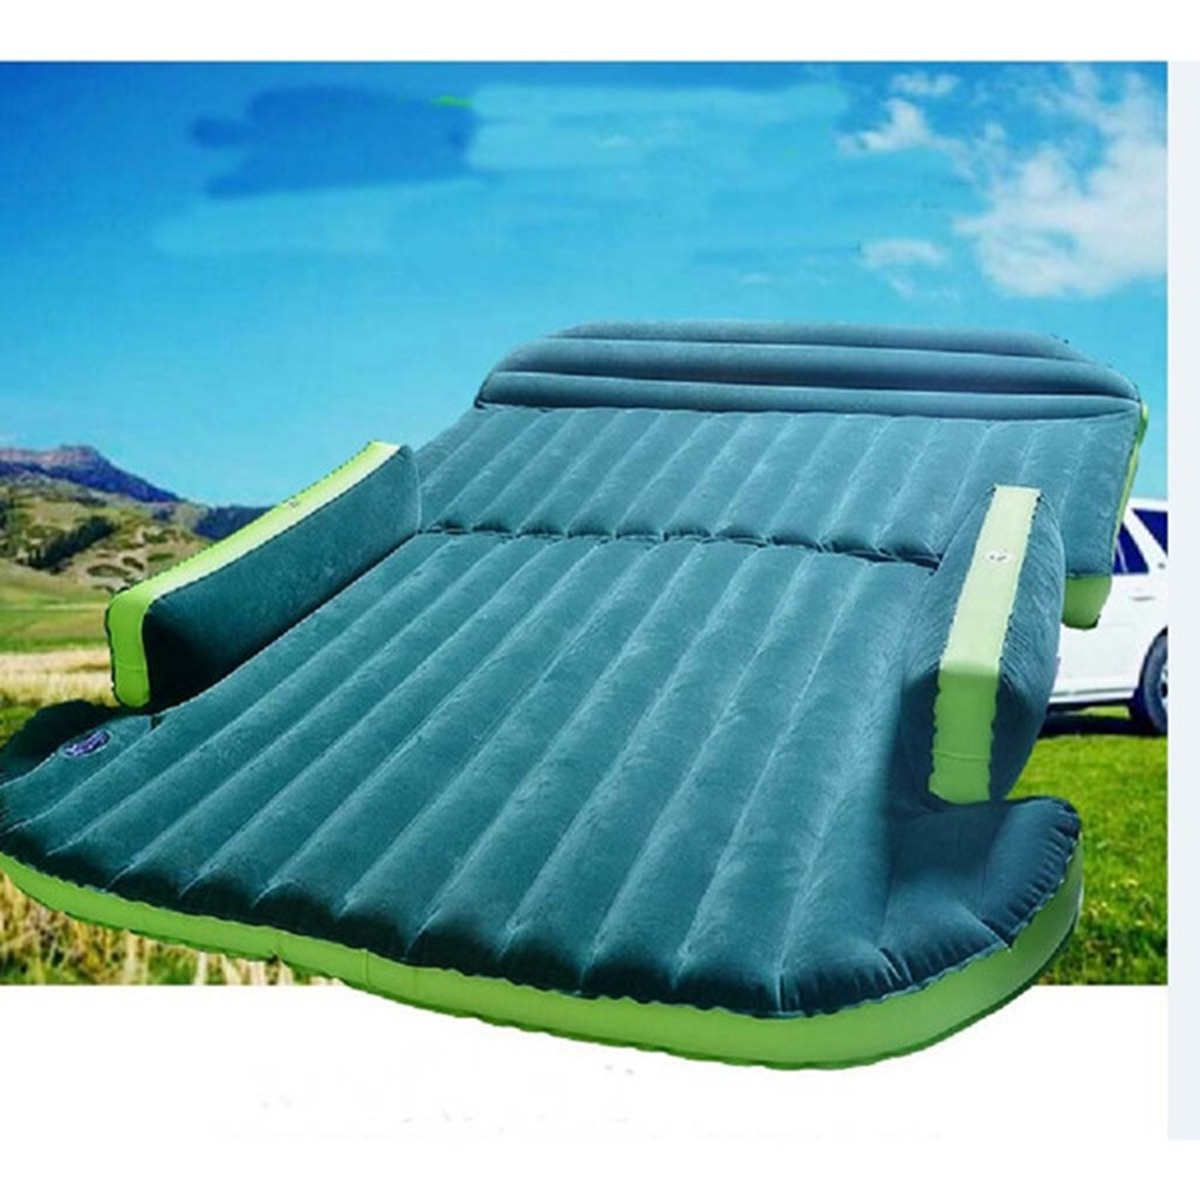 Universal Car Air Mattress Travel Bed Car Back Seat Cover Inflatable Mattress Air Bed Inflatable Car Bed For Camping for SUV